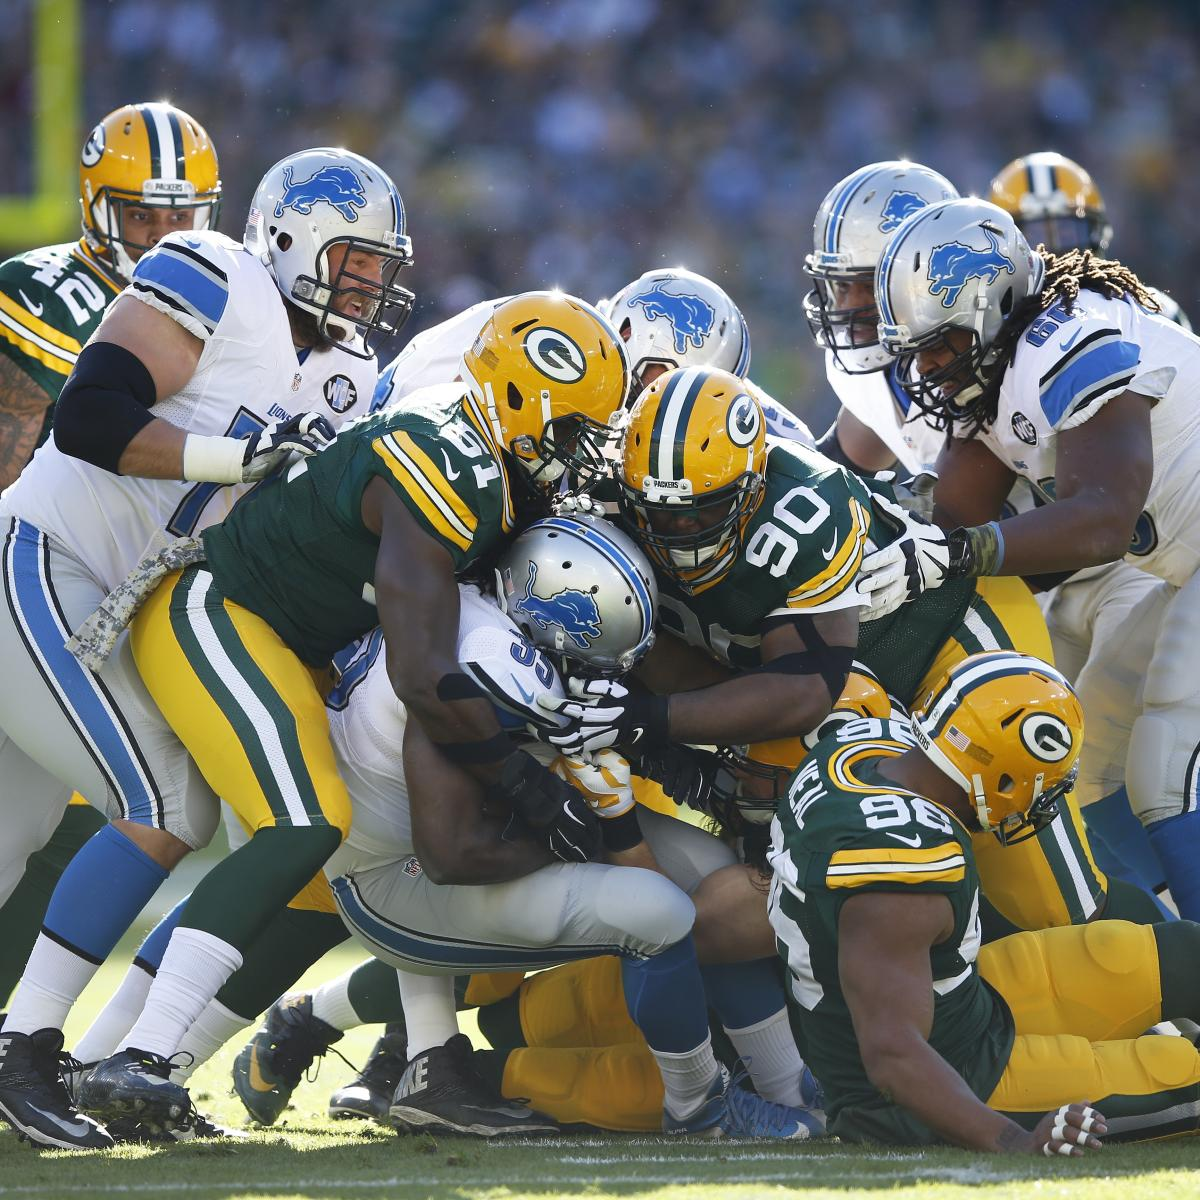 Get the latest Packers news schedule photos and rumors from Packers Wire the best Packers blog available